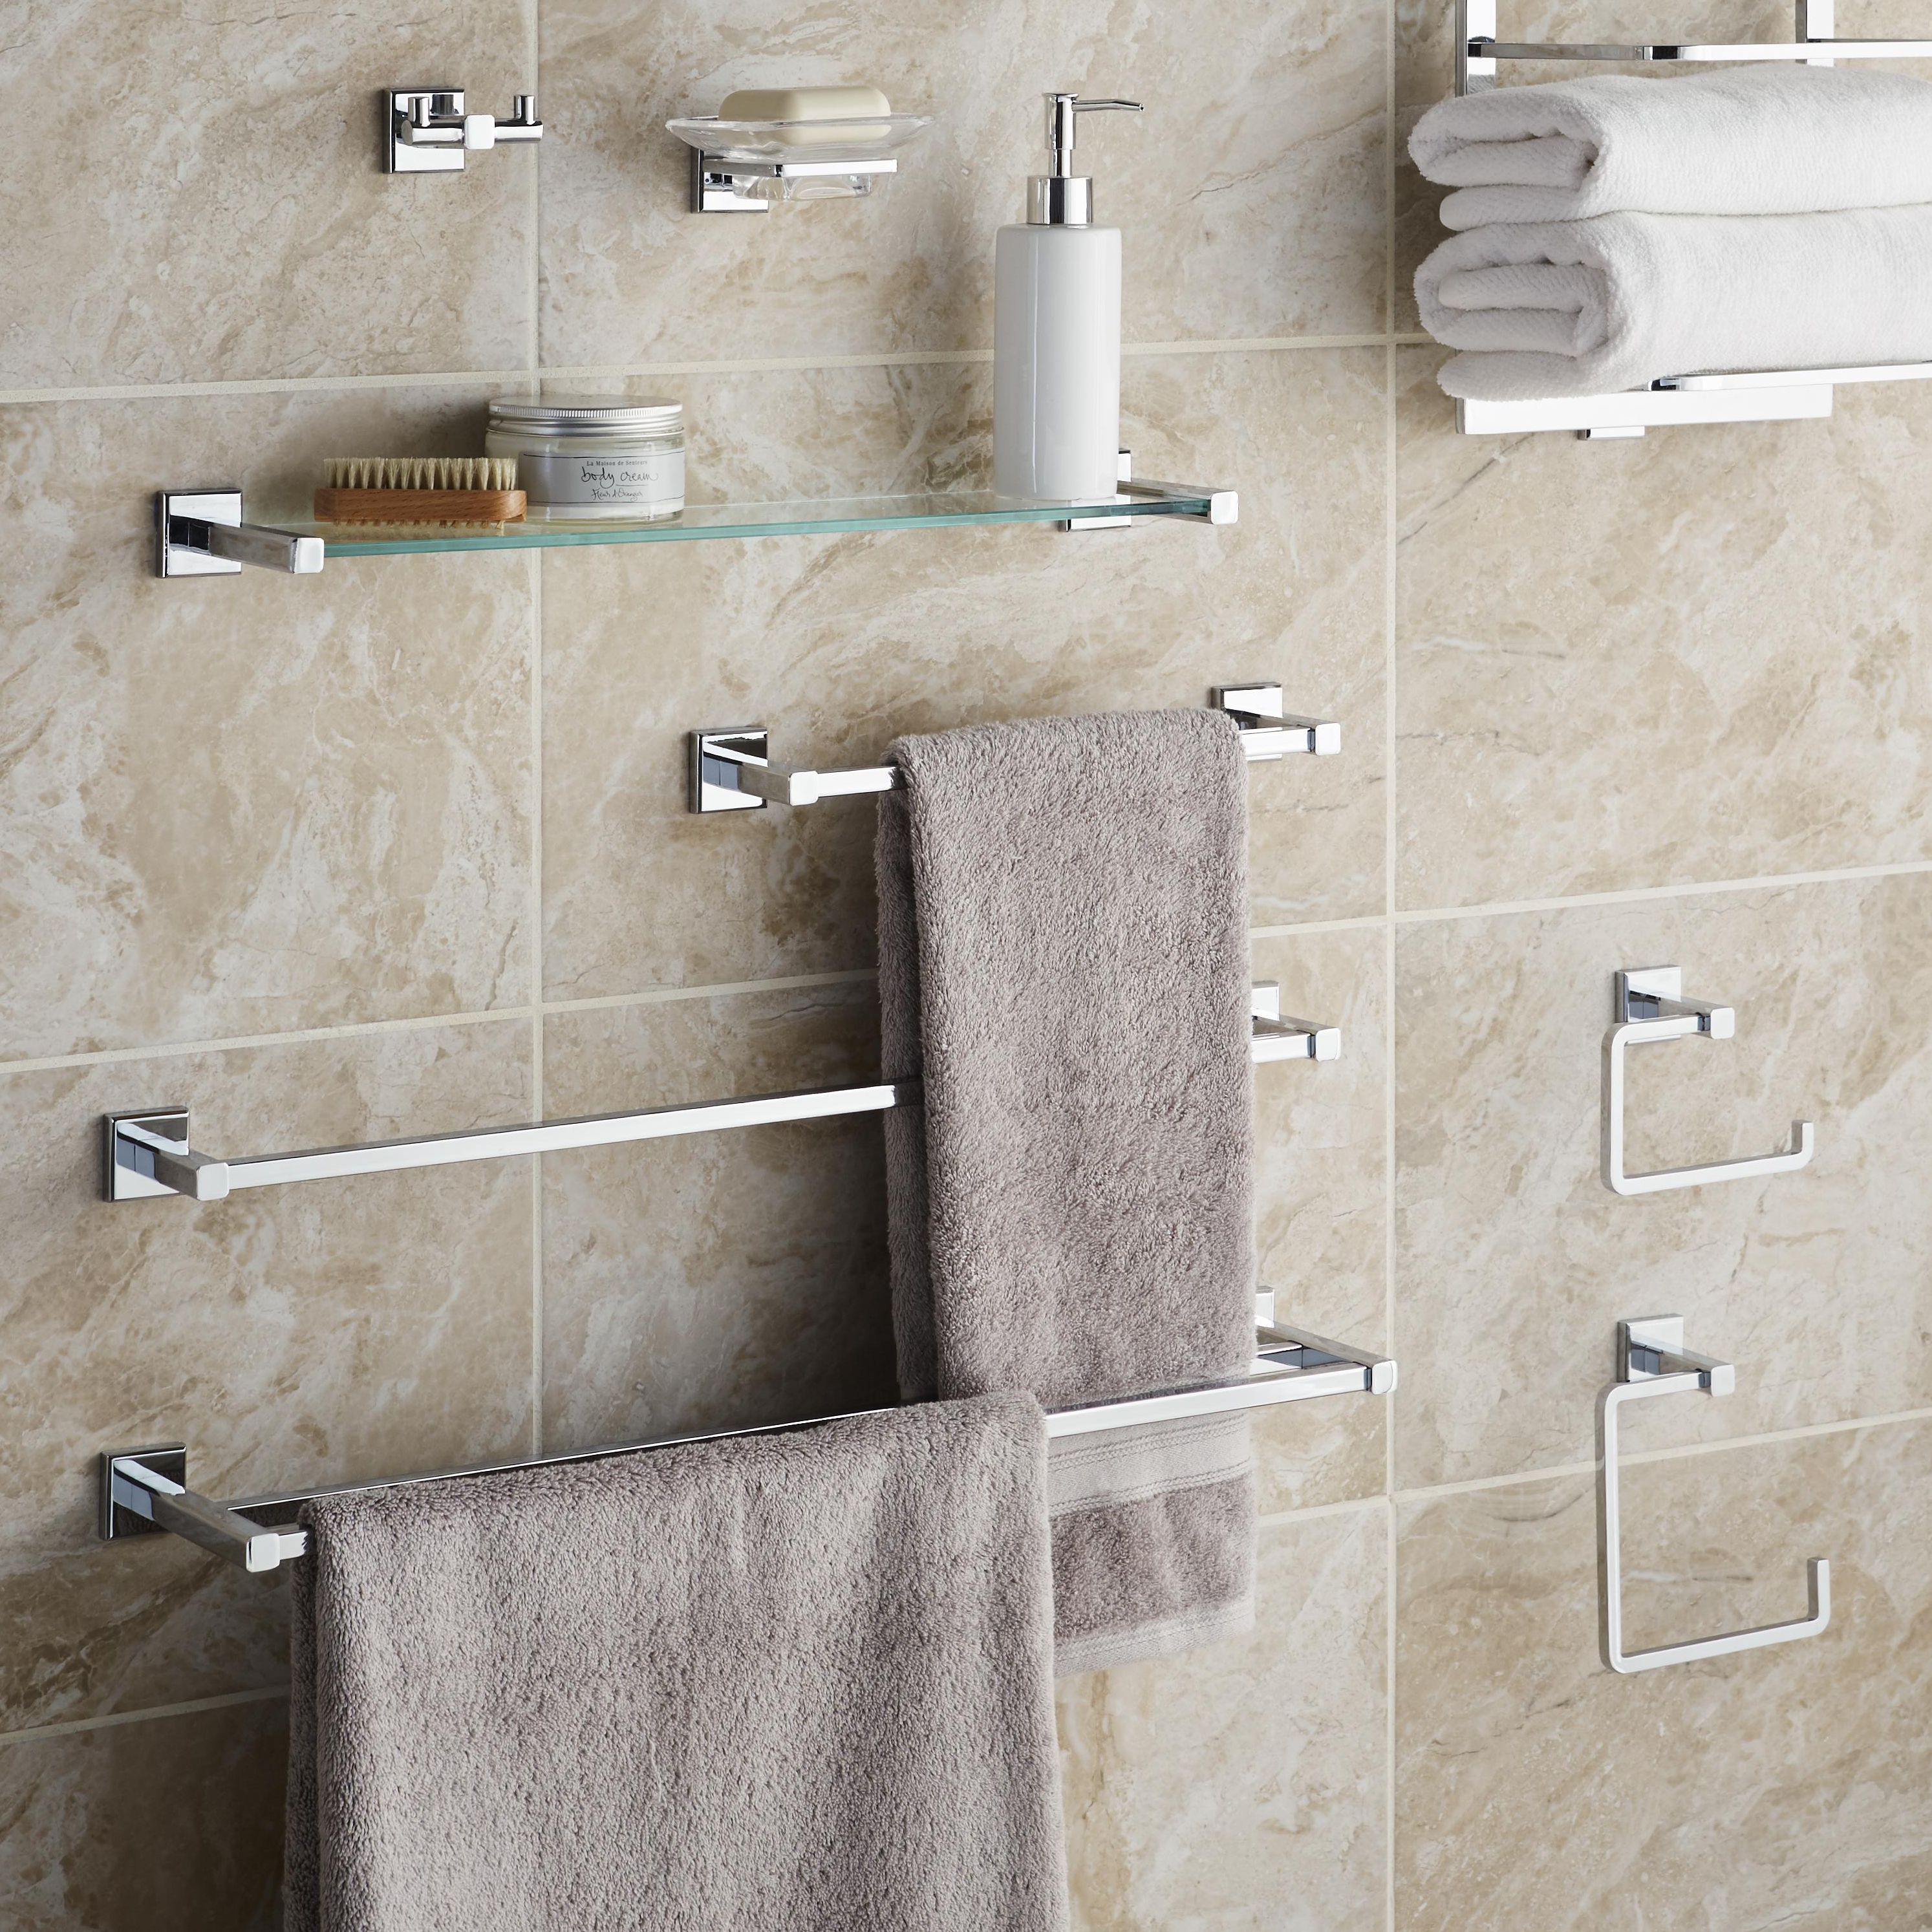 Bathroom Accessories Pictures 15 latest & stylish bathroom accessories | styles at life